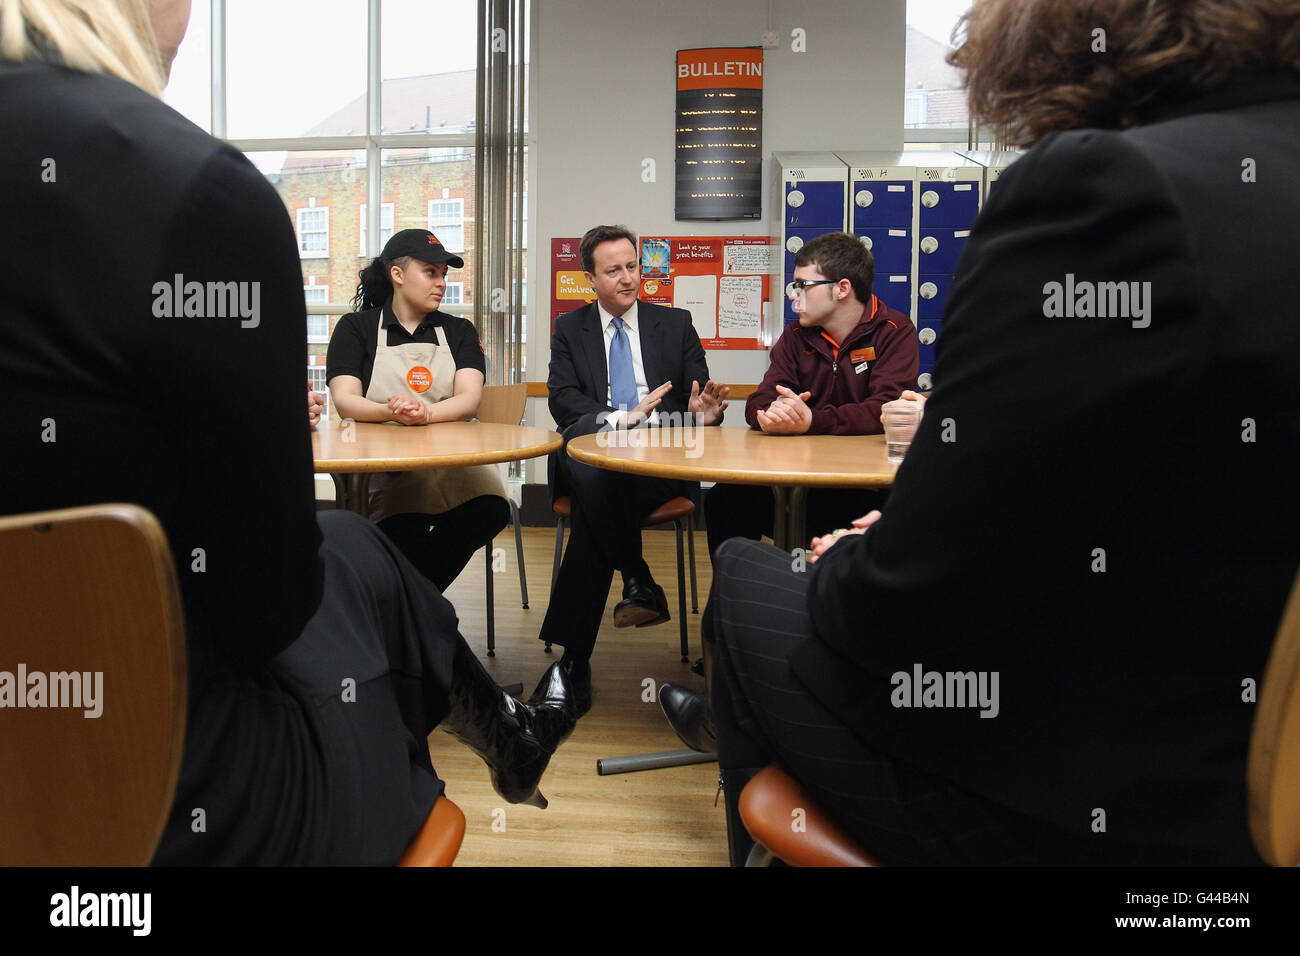 Prime Minister David Cameron speaks with staff members during a visits to a branch of Sainsbury's supermarket in Stock Photo